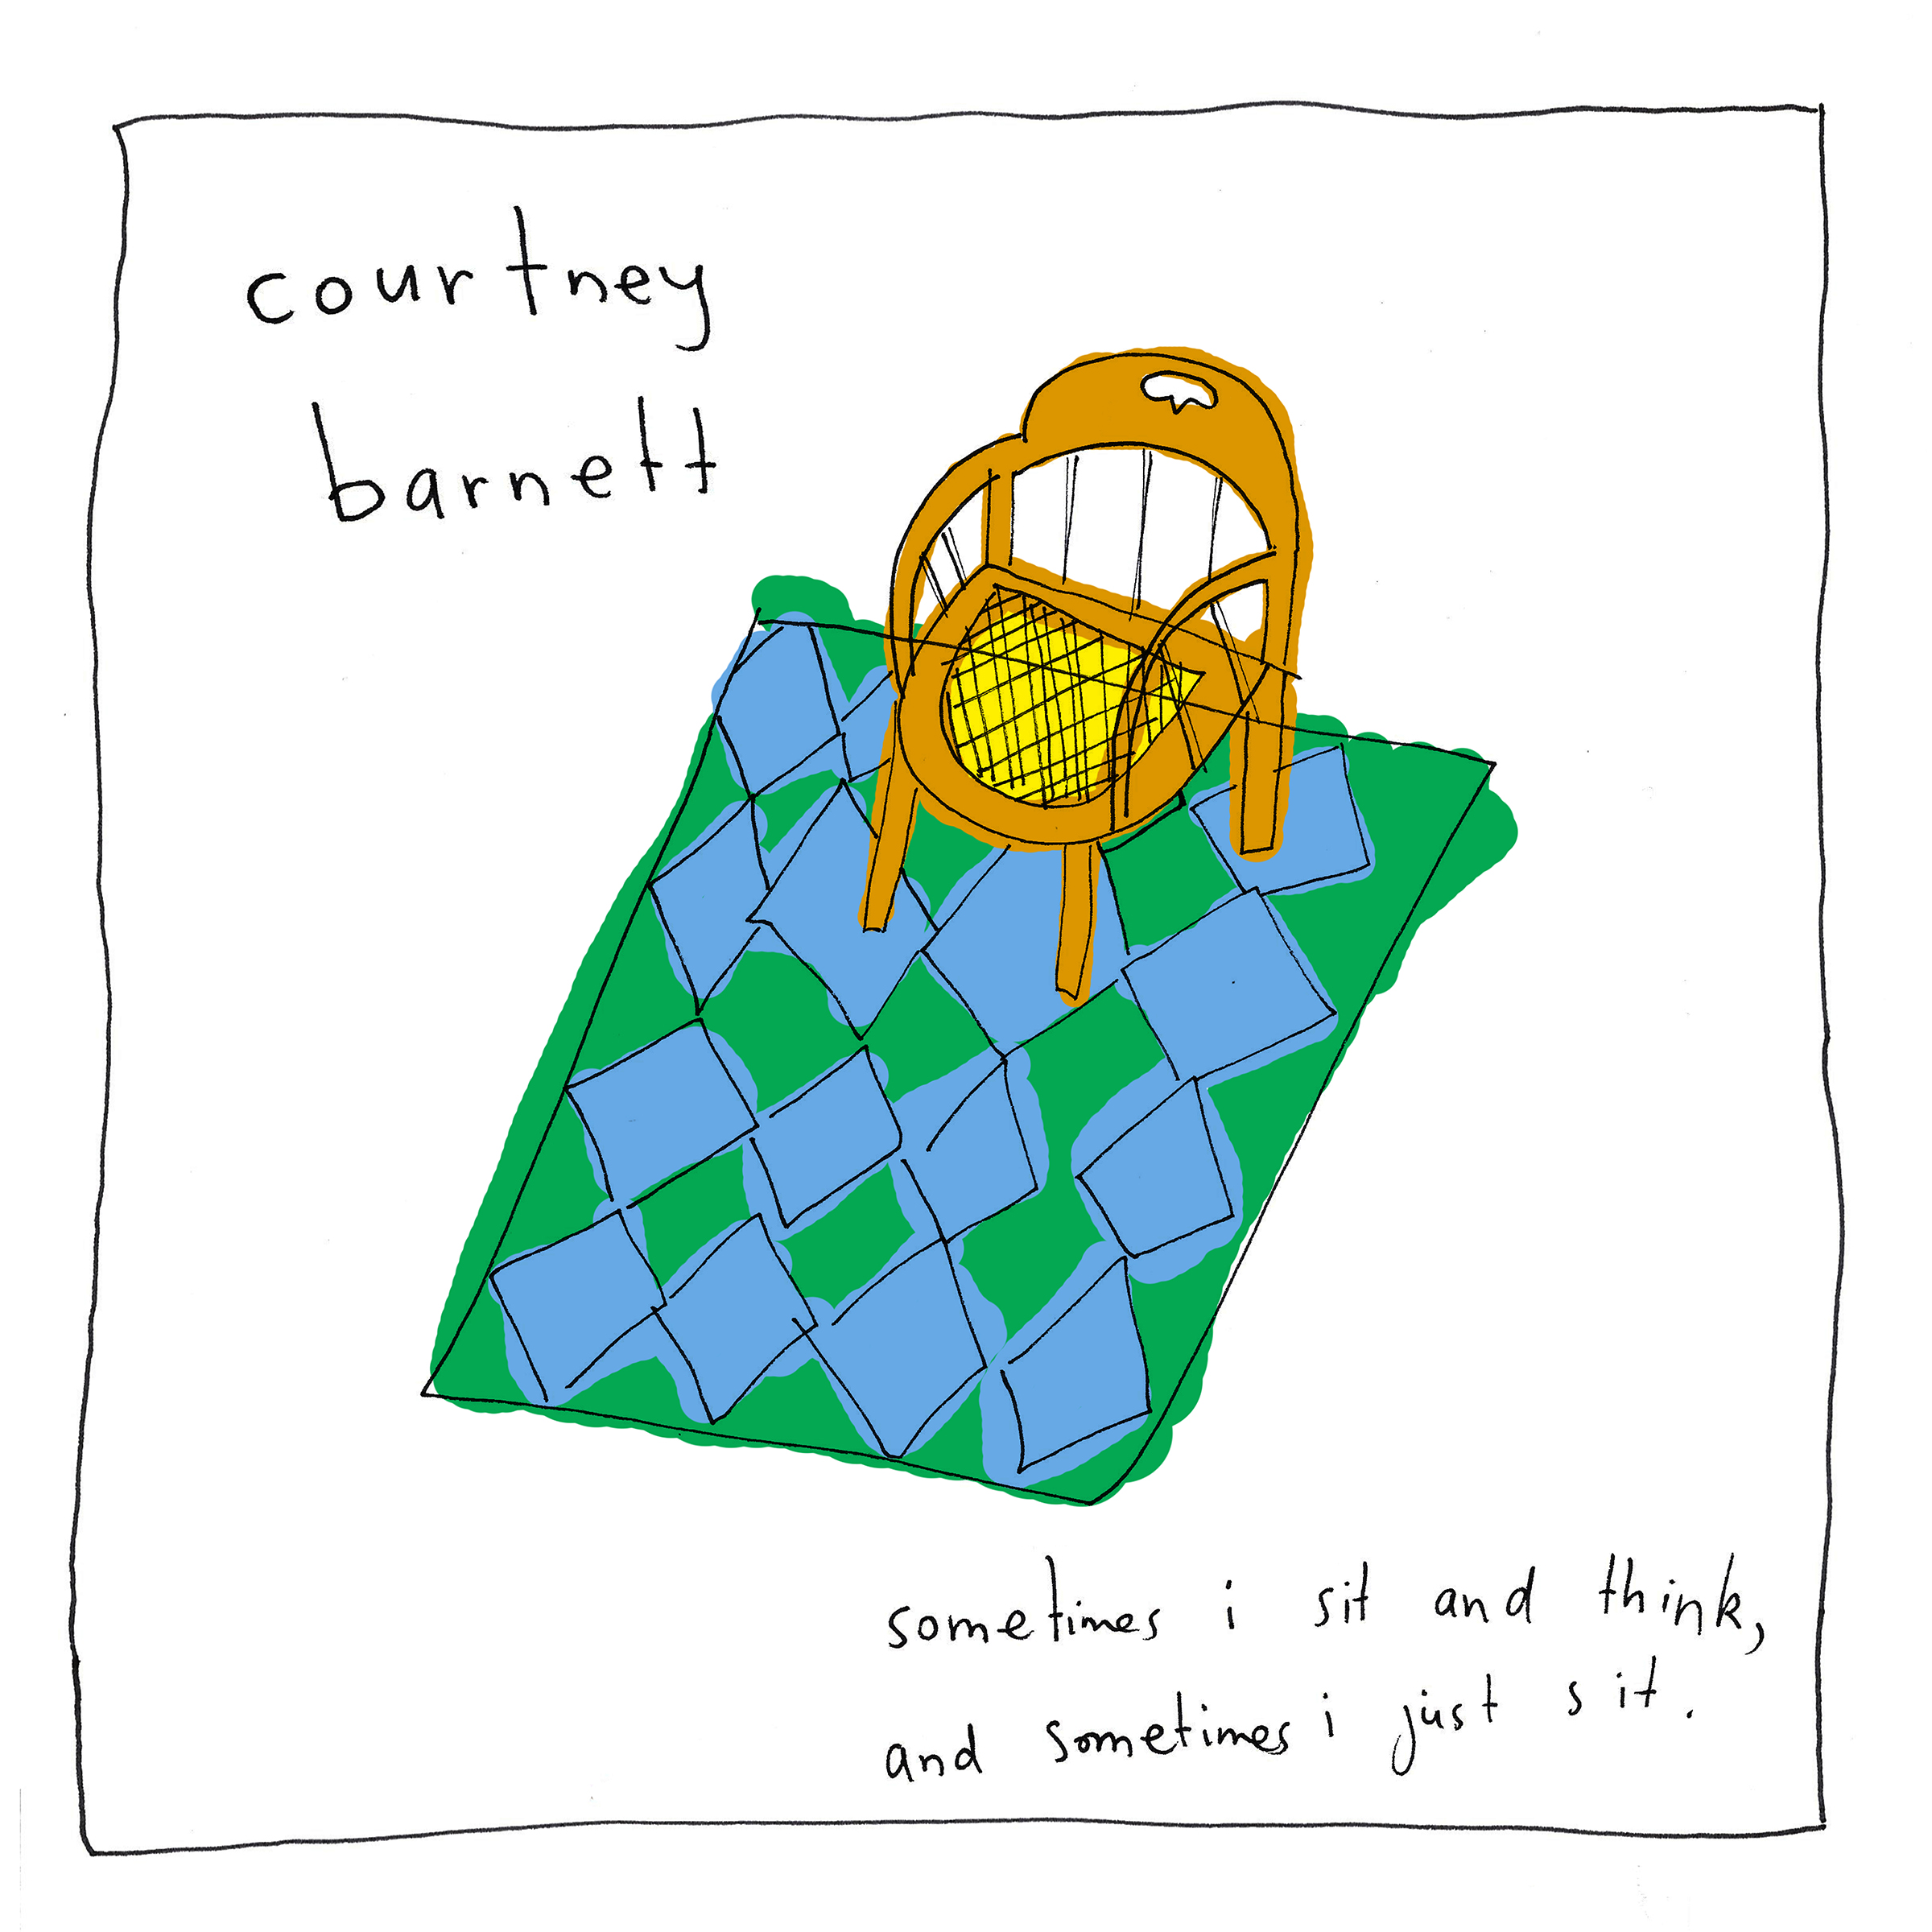 Courtney Barnett 'Sometimes I Sit And Think And Sometimes I Just Sit'